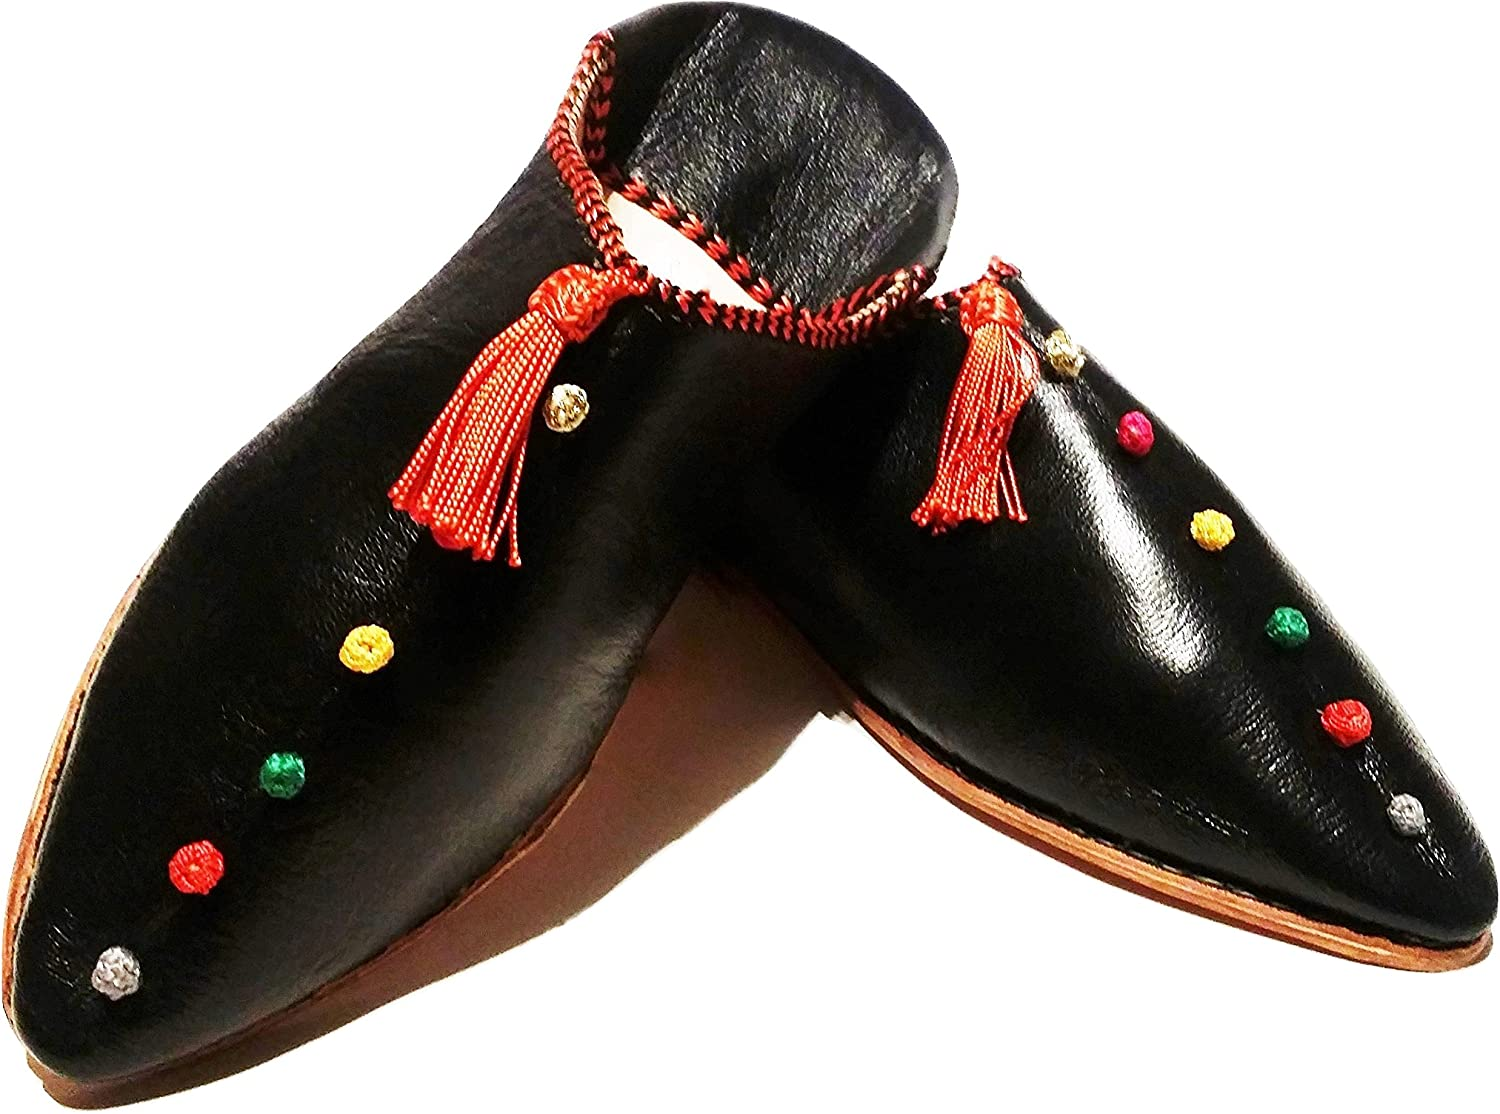 Mgoldccan Babouche Flat Leather Handmade shoes - City Style in Berber Black (Ships from Within USA)